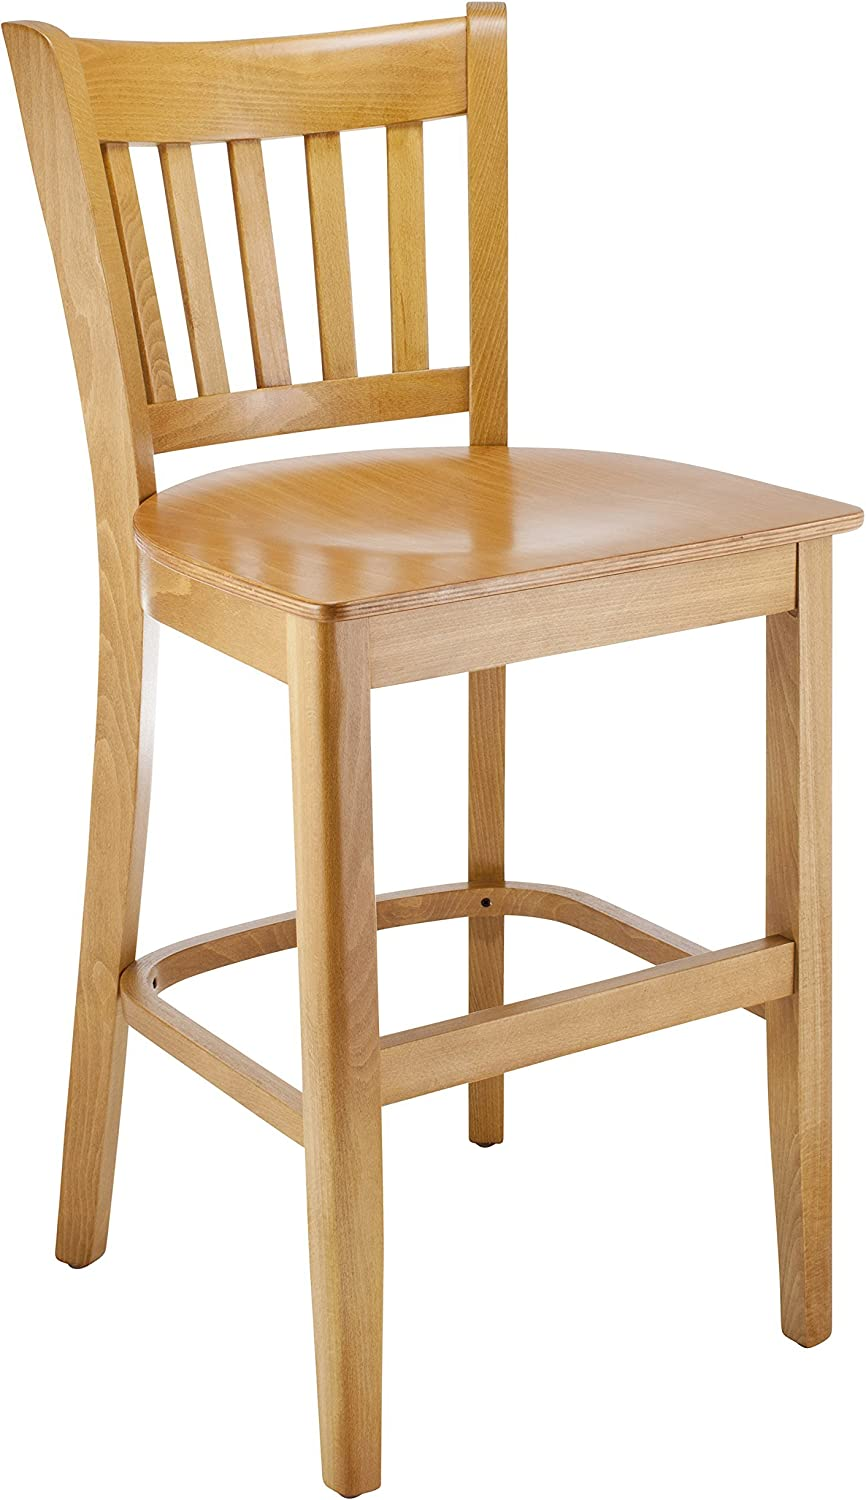 Beechwood Mountain Popular products BSD-4BW24-C Solid Beech Sales for sale Stool in Che Wood bar